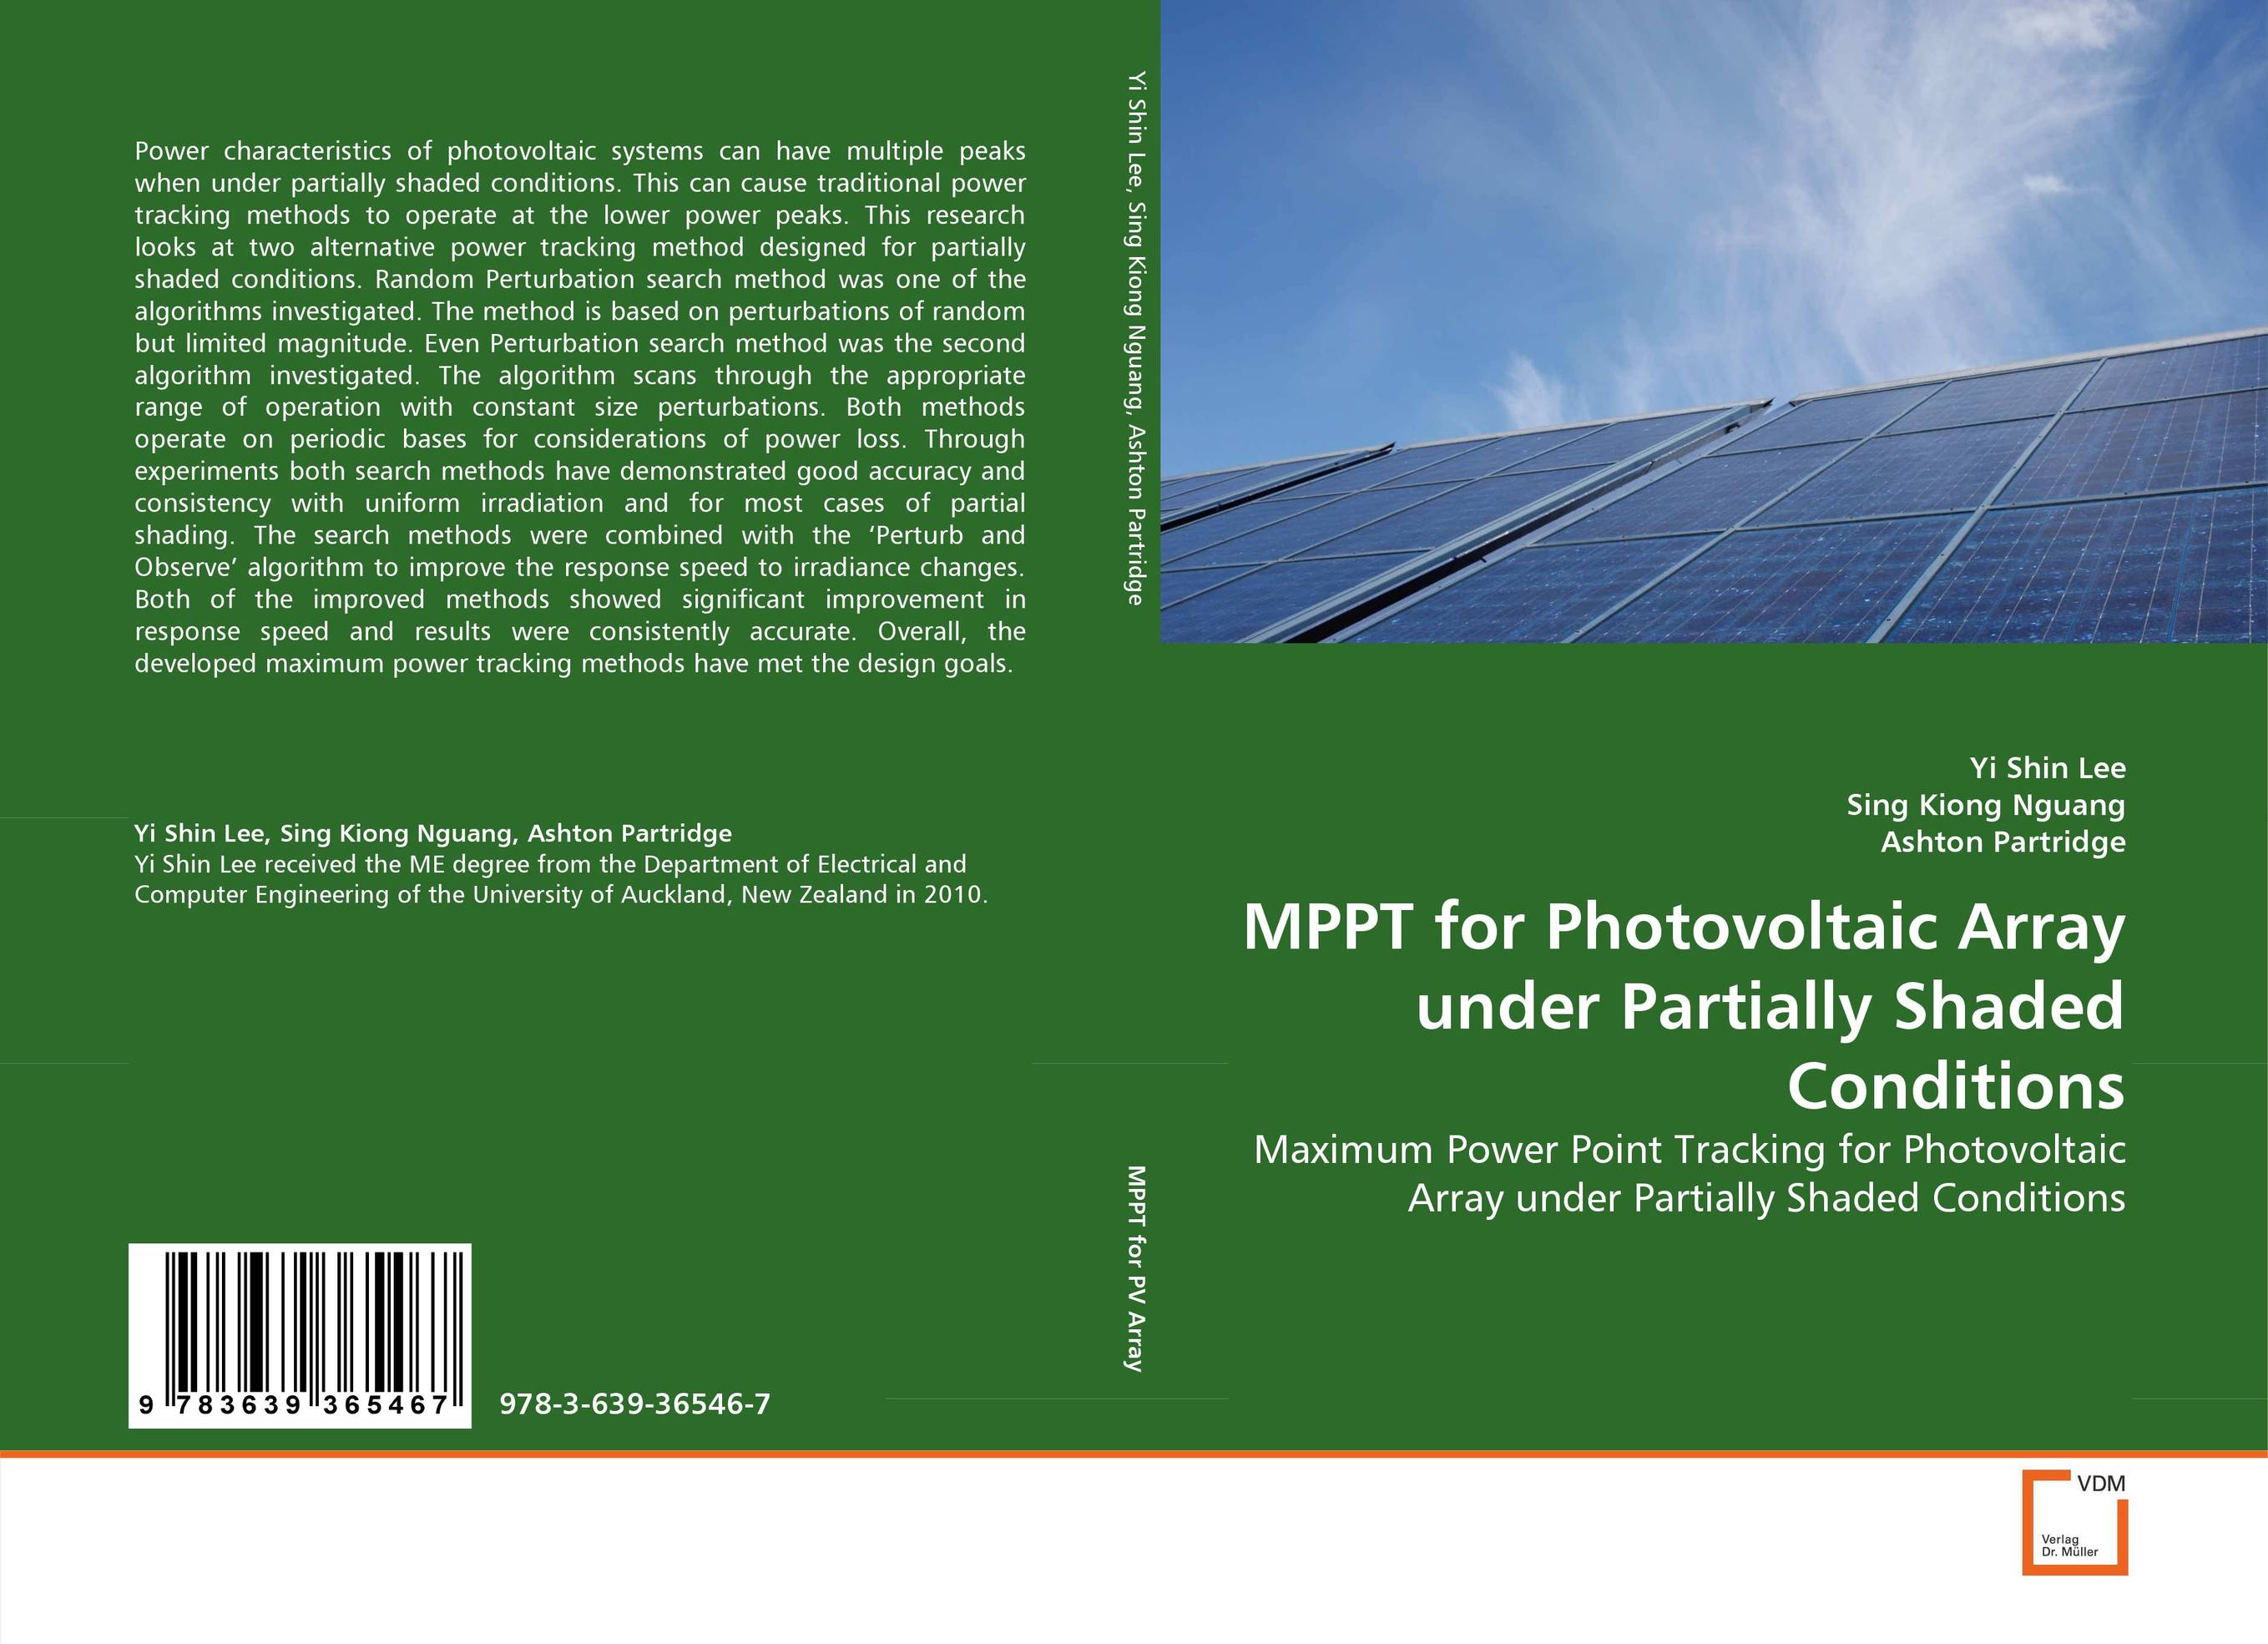 MPPT for Photovoltaic Array under Partially Shaded Conditions hcpr multiplied with tfidf for effective search method